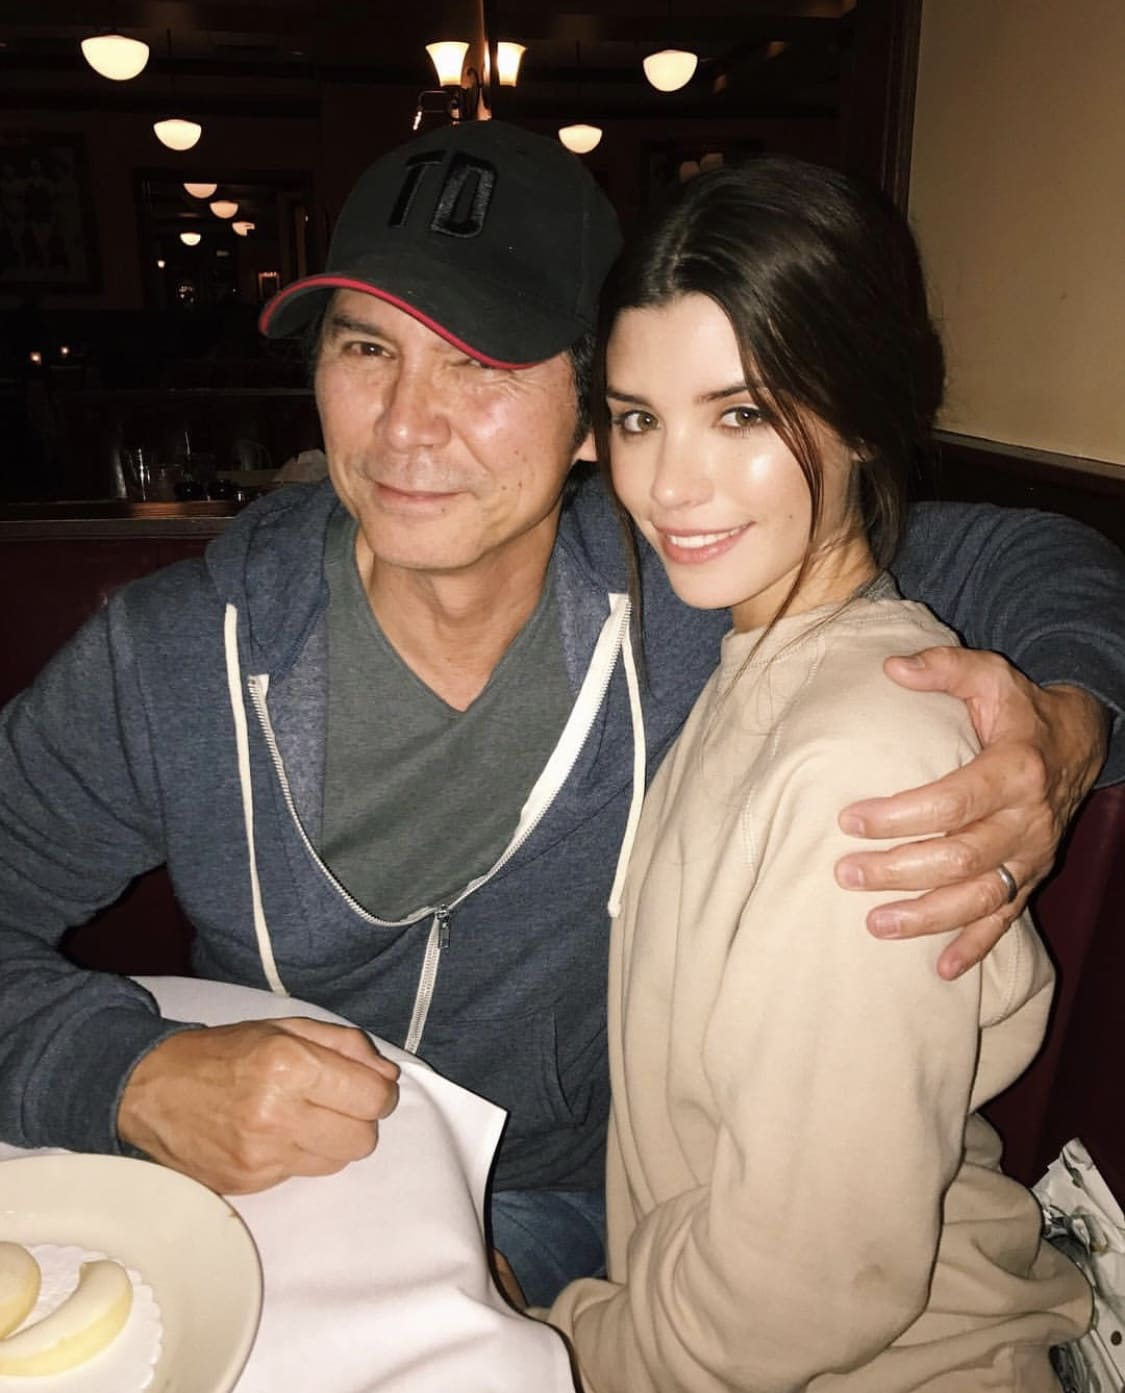 The young model recently revealed that her celebrity dad is Golden-Globe nominated actor Lou Diamond Phillips, whose breakthrough came when he starred as Ritchie Valens in the biographical drama film 'La Bamba'. (Source: Adam Mont)